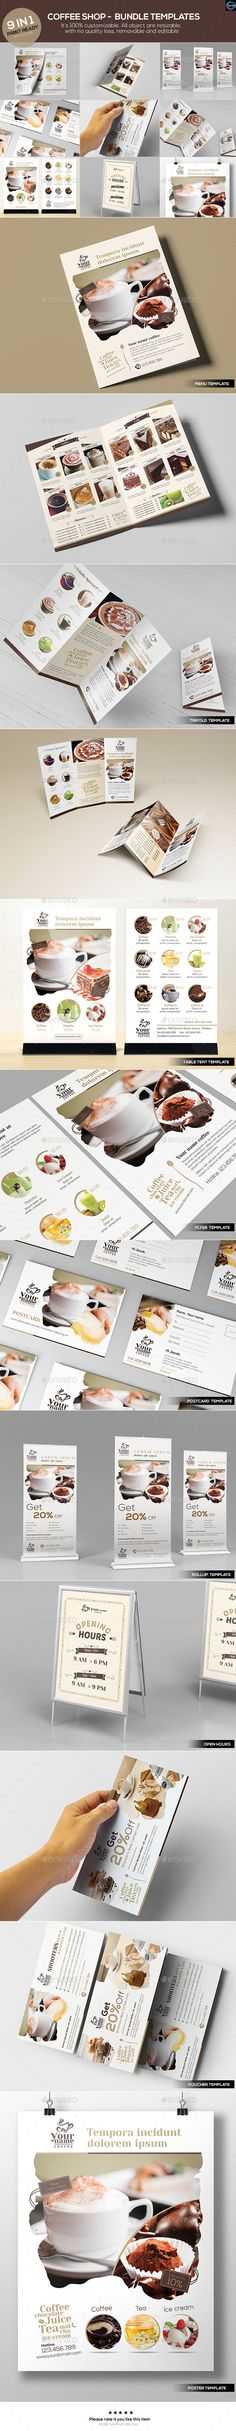 Coffee Shop  Bundle Templates — Photoshop PSD #poster #coffee flyer • Available here → https://graphicriver.net/item/coffee-shop-bundle-templates/12527338?ref=pxcr